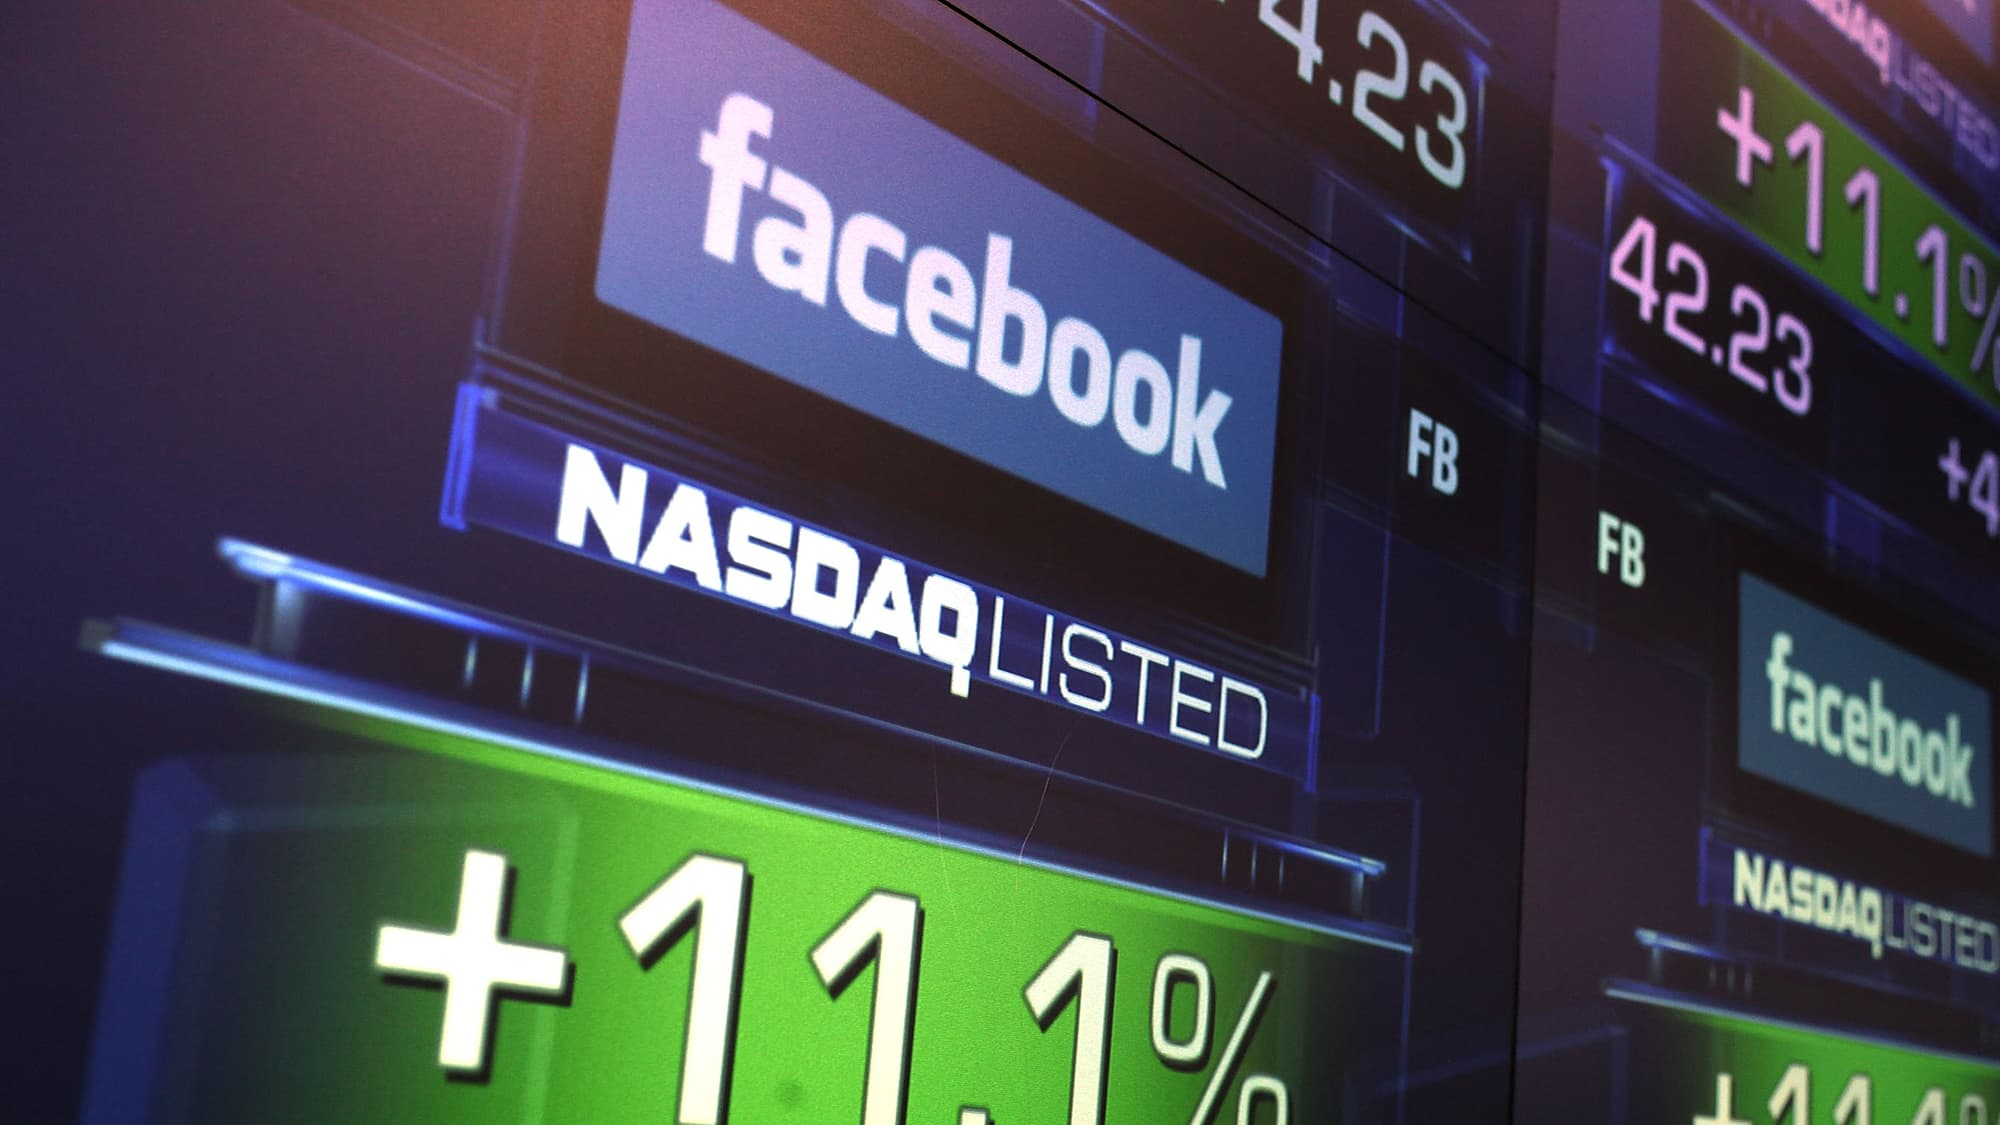 Facebook leads the pack into earnings, trader says